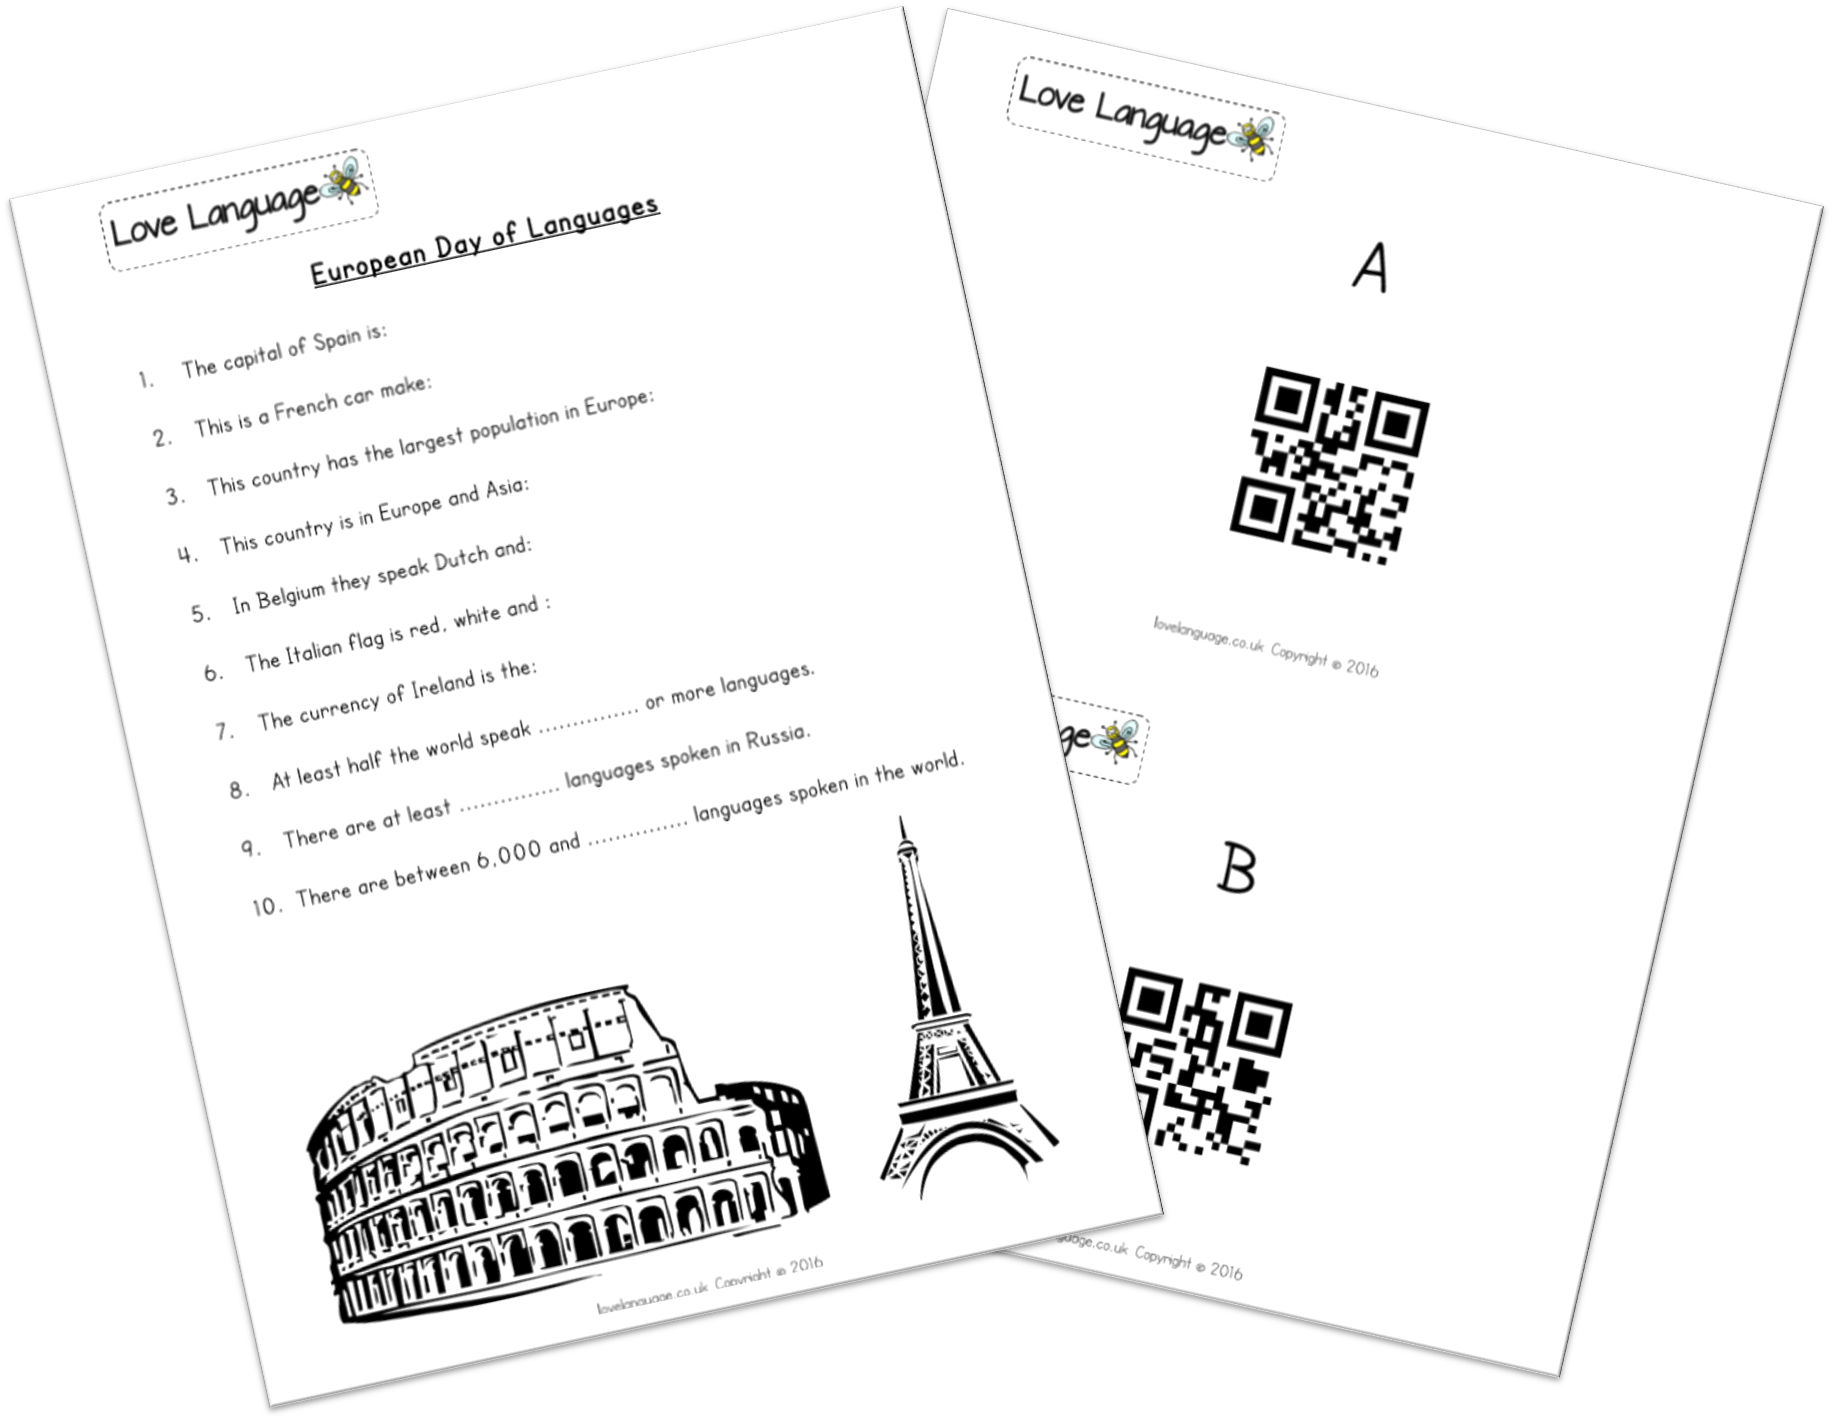 European Day of Languages QR Code Quiz